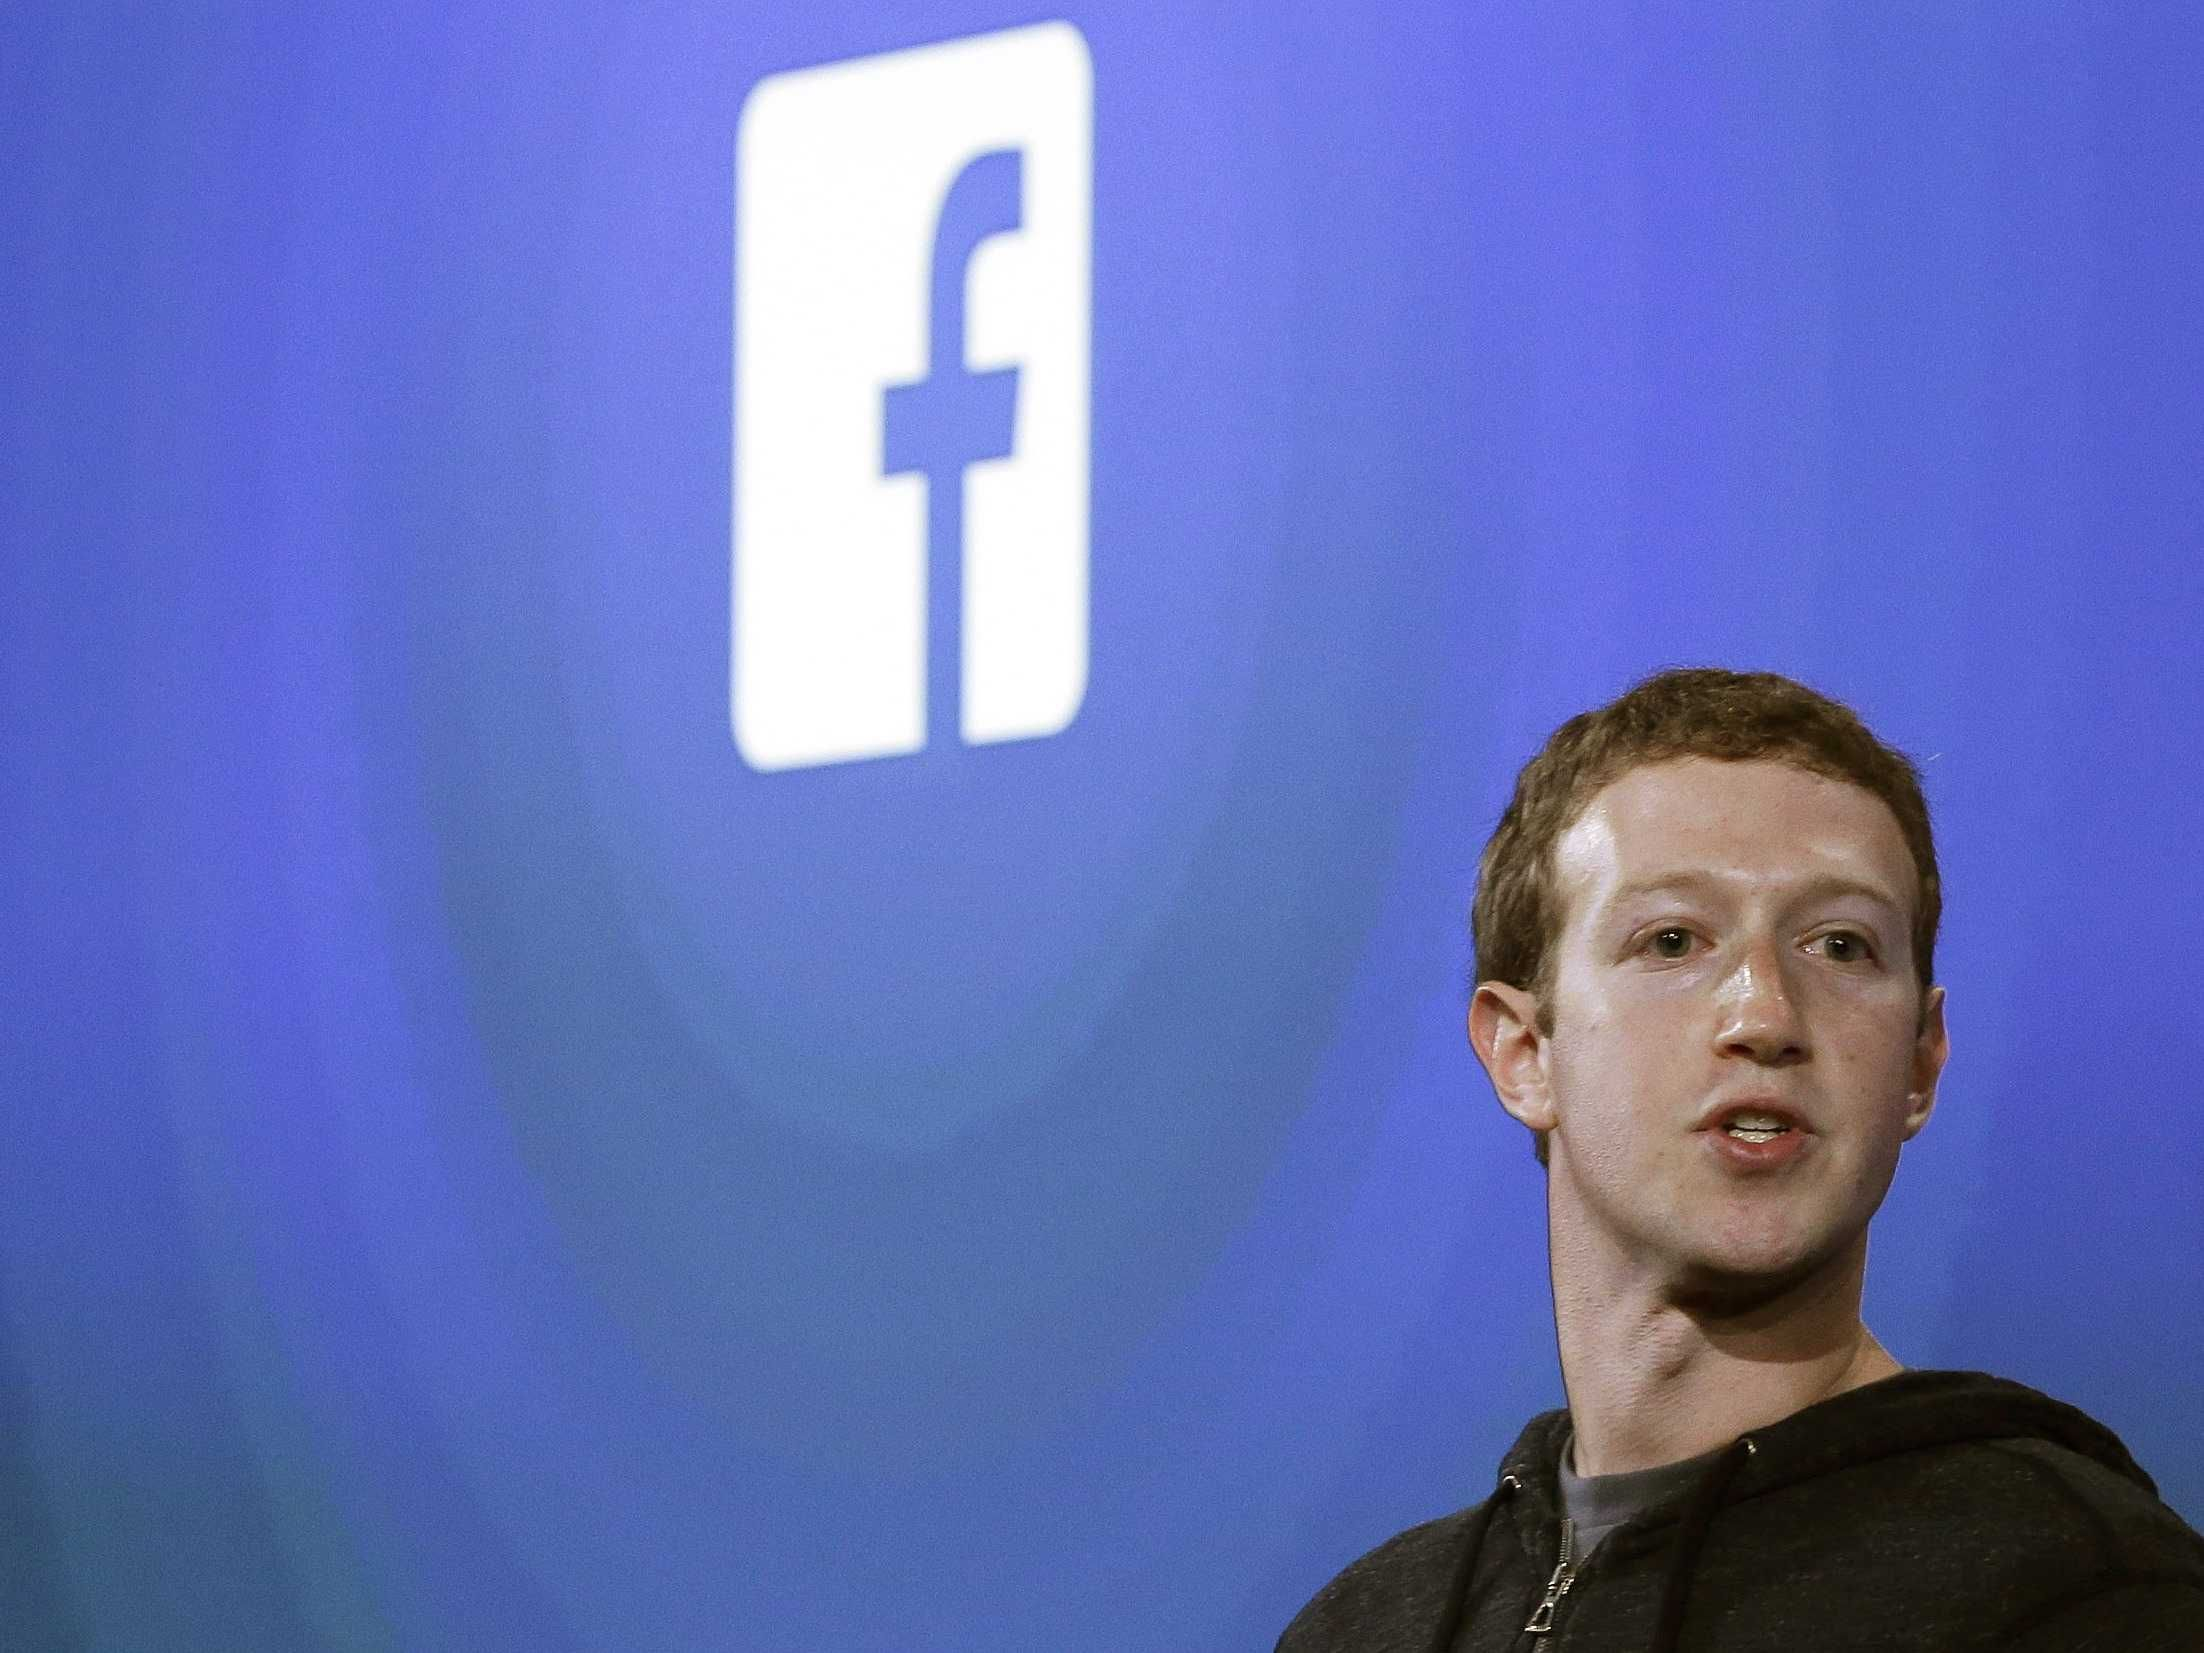 Facebook CEO Mark Zuckerberg Just Vehemently Denied Giving The Government Direct Access To Facebook Servers